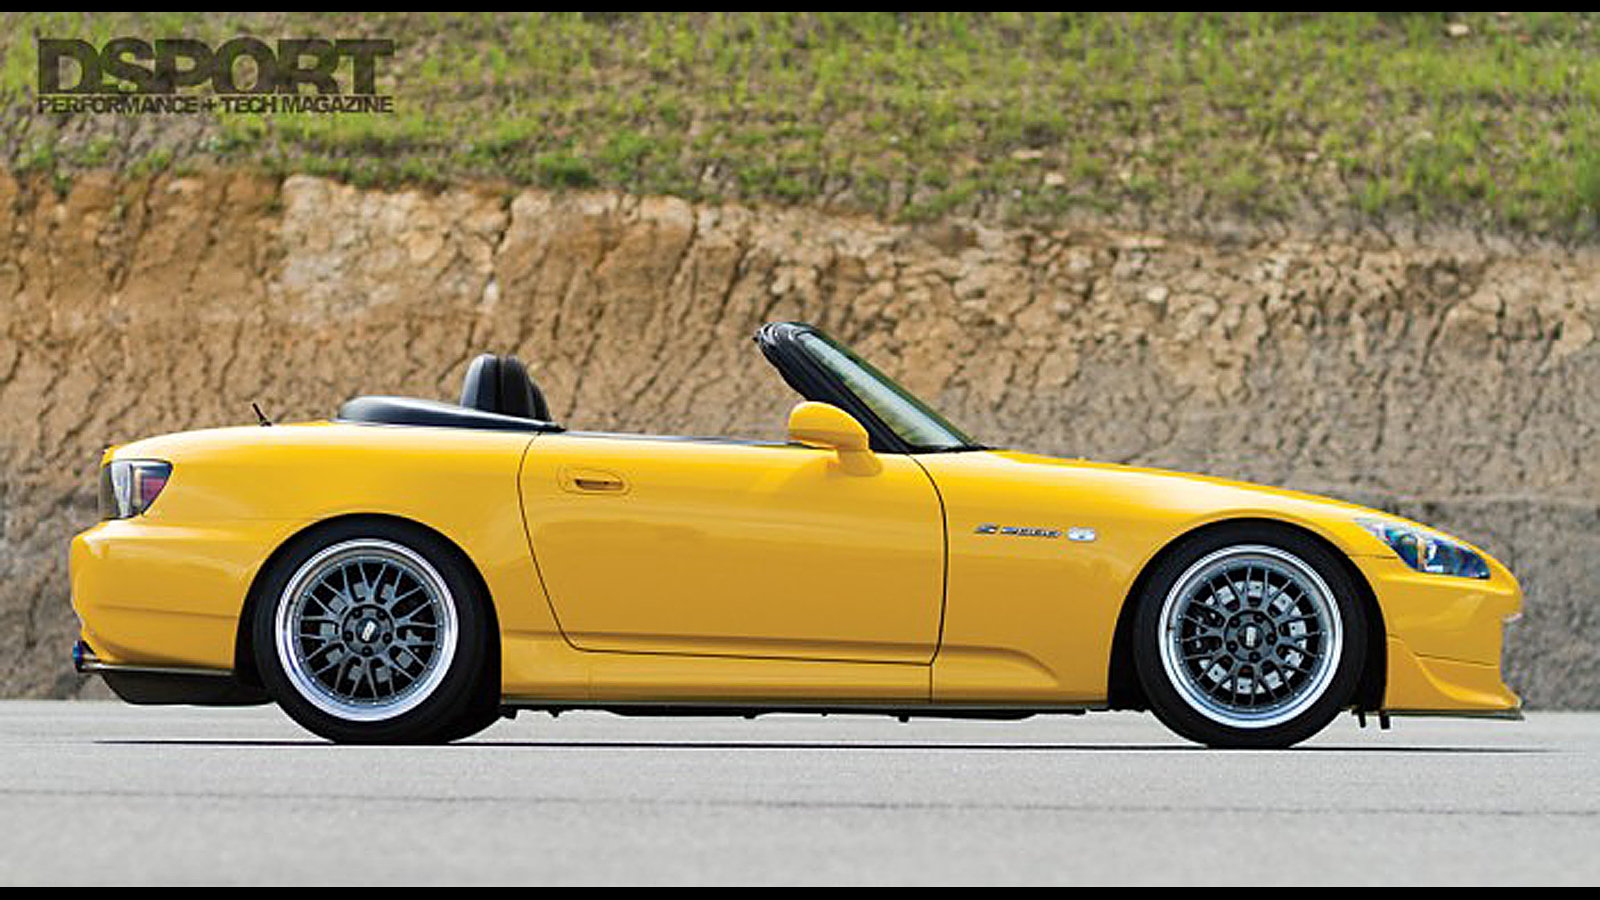 Turbocharged S2K Produces Over 600HP